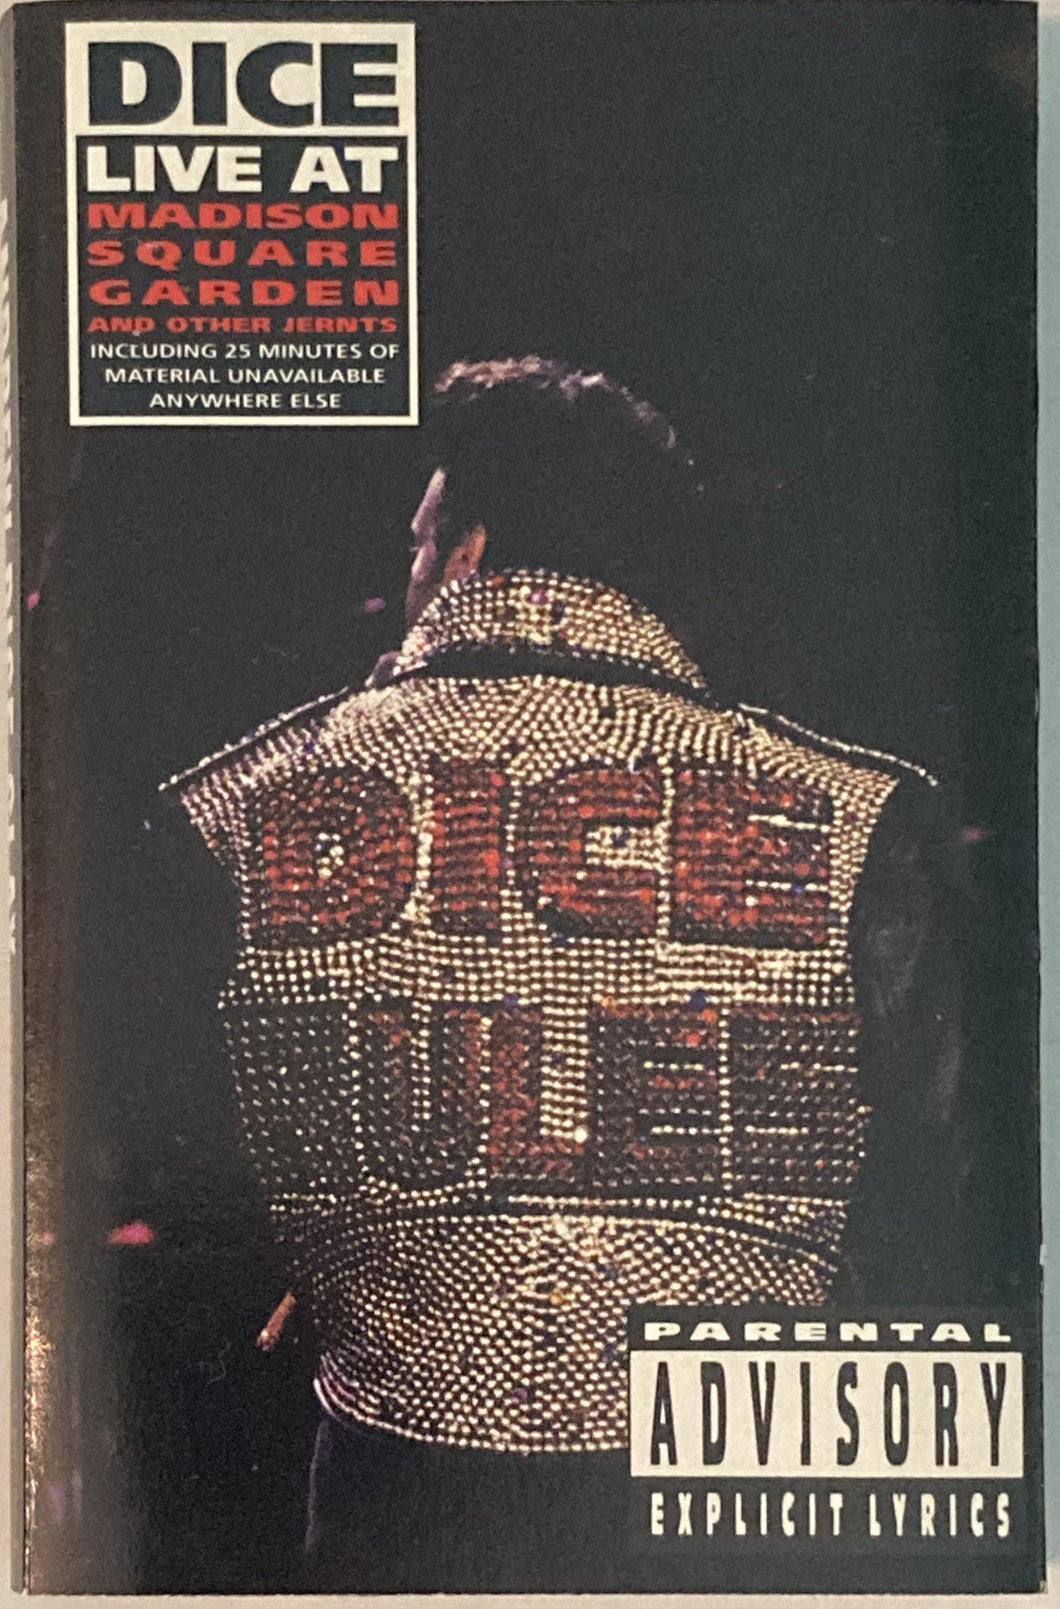 Andrew Dice Clay - Dice Live At Madison Square Garden Cassette VG+